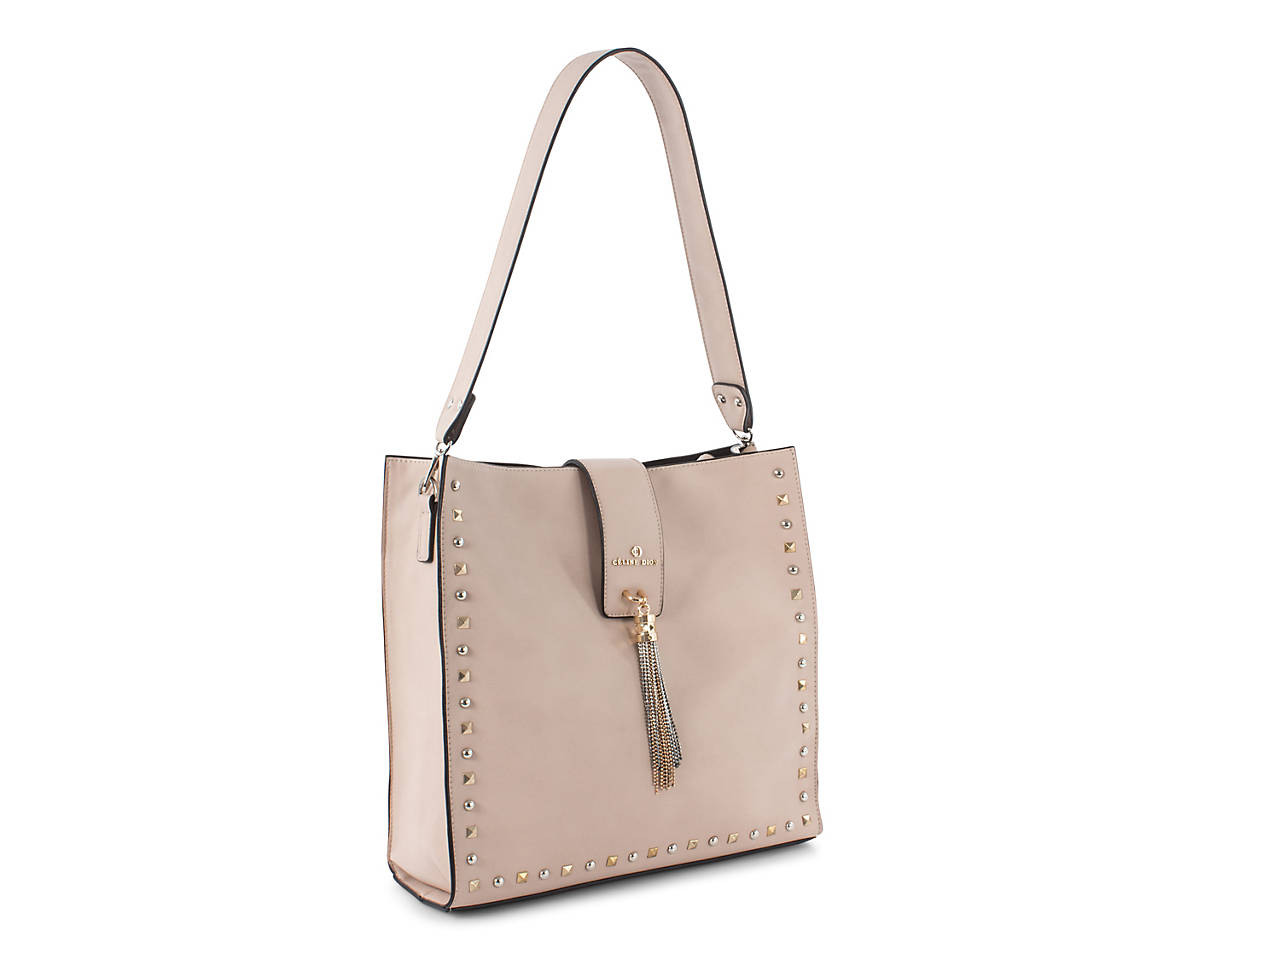 a24da9435348 Celine Dion Cadenza Shoulder Bag Women s Handbags   Accessories